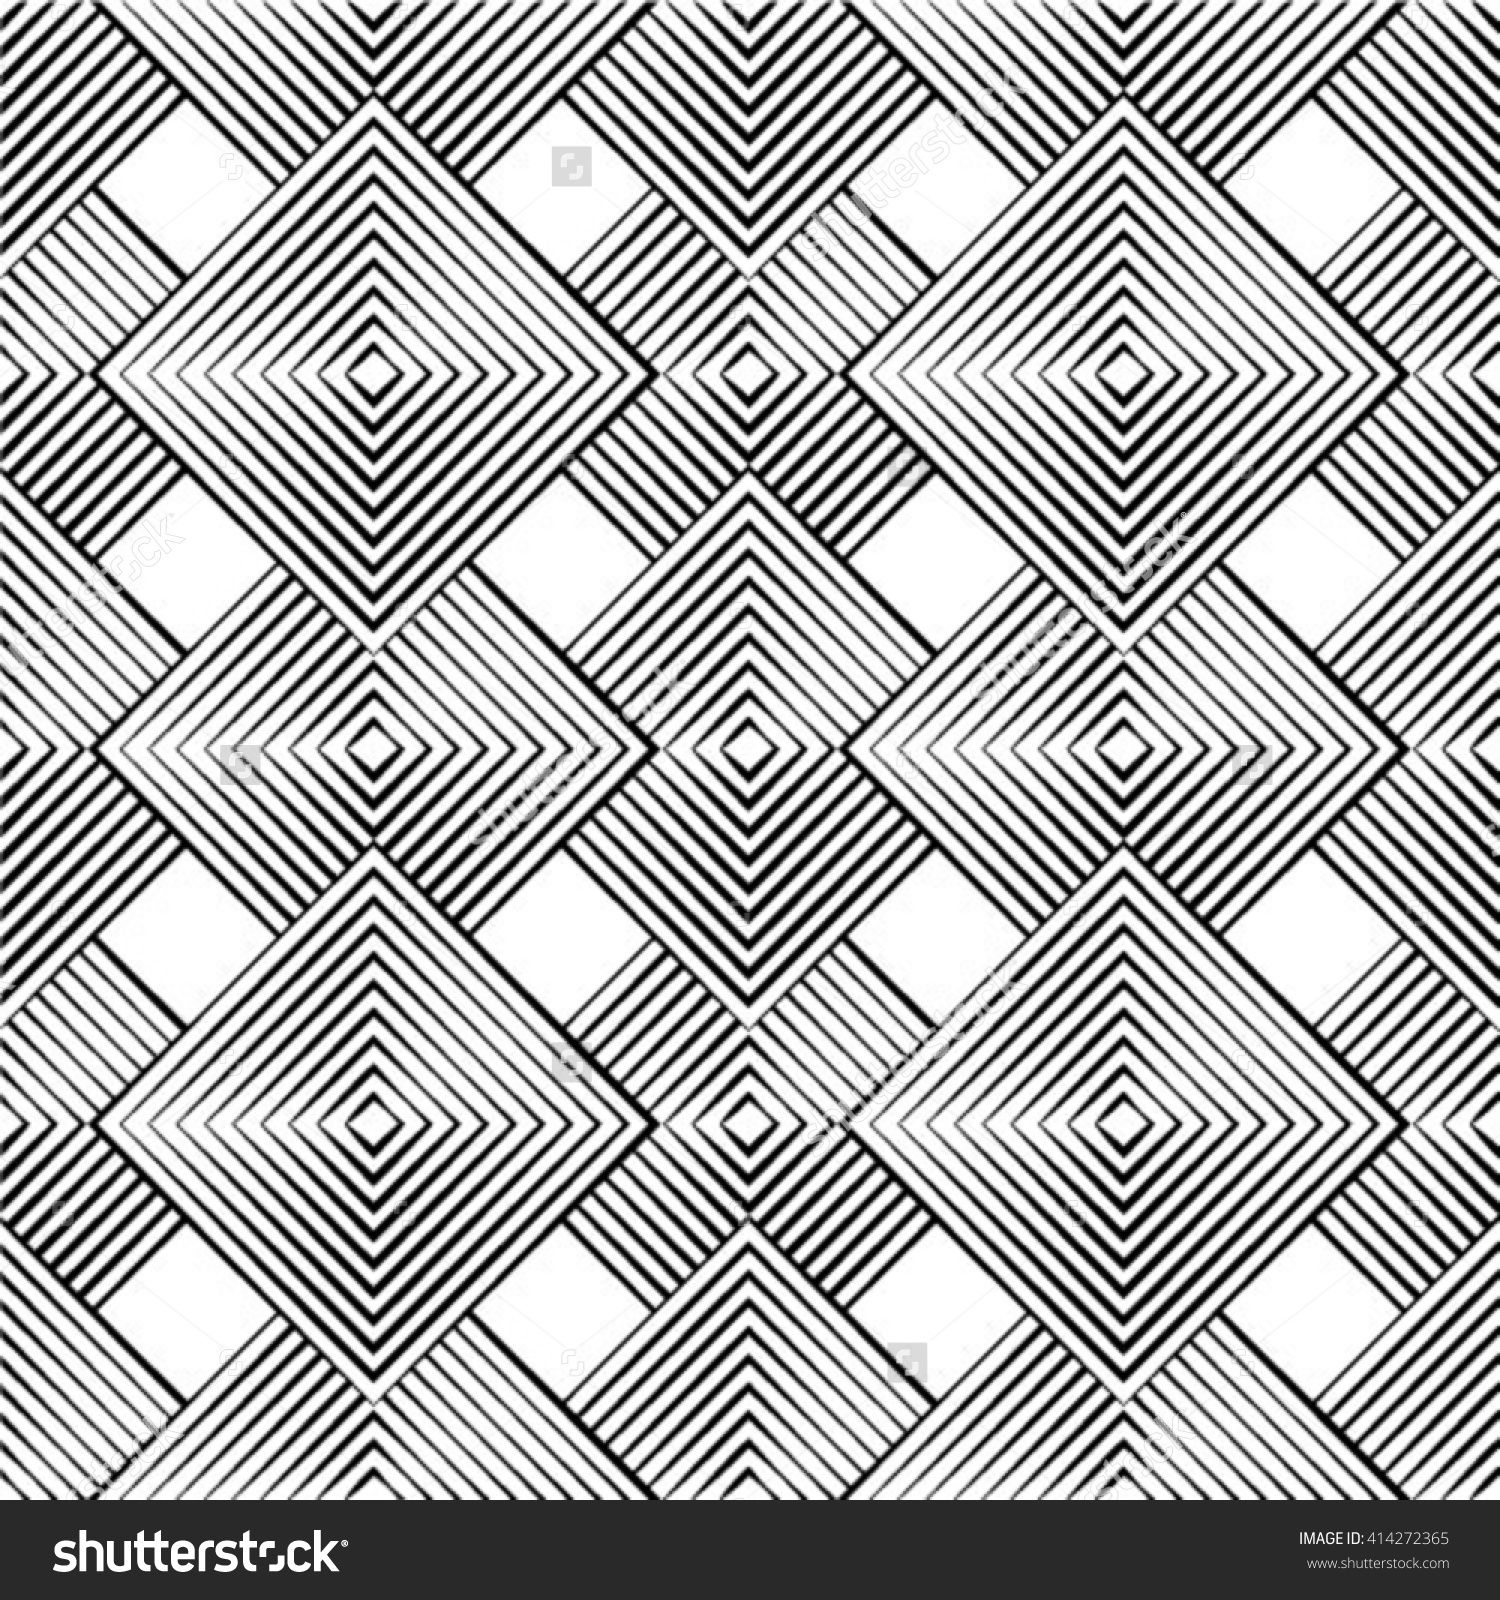 Seamless Geometric Pattern Geometric Simple Print Vector Repeating Texture